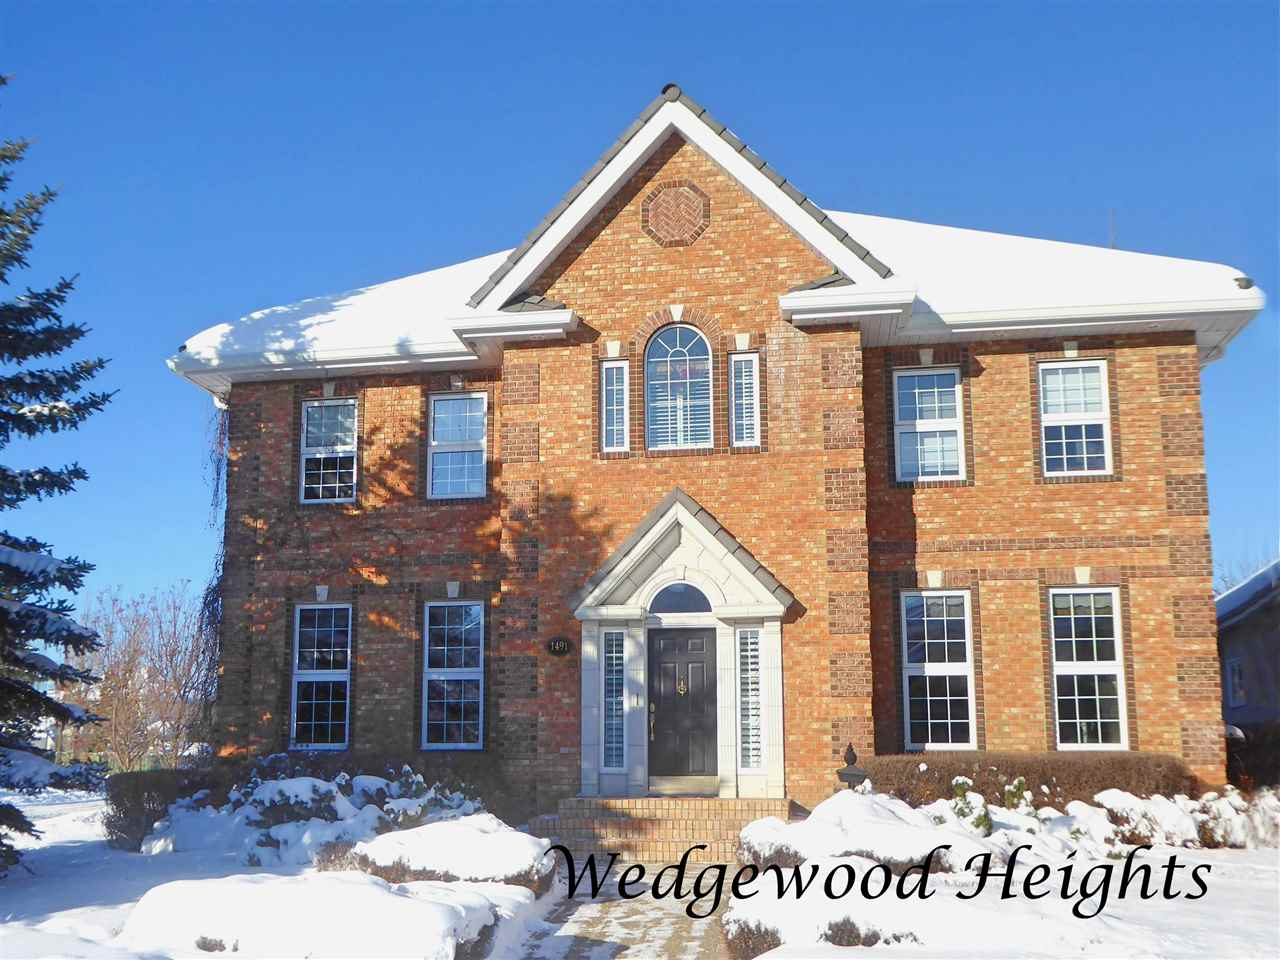 """Welcome to this charming Georgian """"Scott Arthur"""" built home located on a quiet street backing onto a treed ravine. Attention to detail and style is unsurpassed in this 4166 square foot brick beauty. Extensive use of high end finishings are found throughout this home including, striking crown moldings, hardwood and marble flooring, and beautiful built in cabinetry. Main floor features include entertaining sized living and dining rooms, a butler's pantry, a spacious chef's kitchen, huge family room and access to the 2nd level bonus room over the 4-car garage. The upper level has 4-bedrooms, the master with a luxurious 5-piece ensuite, 3 more bedrooms (one with its own 3-piece bath), the laundry room and a 4-piece main bath. The lower level has a family room, games room with wet bar, 5th bedroom, 4-piece bath and loads of storage. Wrought iron fencing encloses the English style grounds that include aggregate patios,  built-in Bar-b-que, gazebo and fire pit. A gracious residence, an impressive lifestyle."""